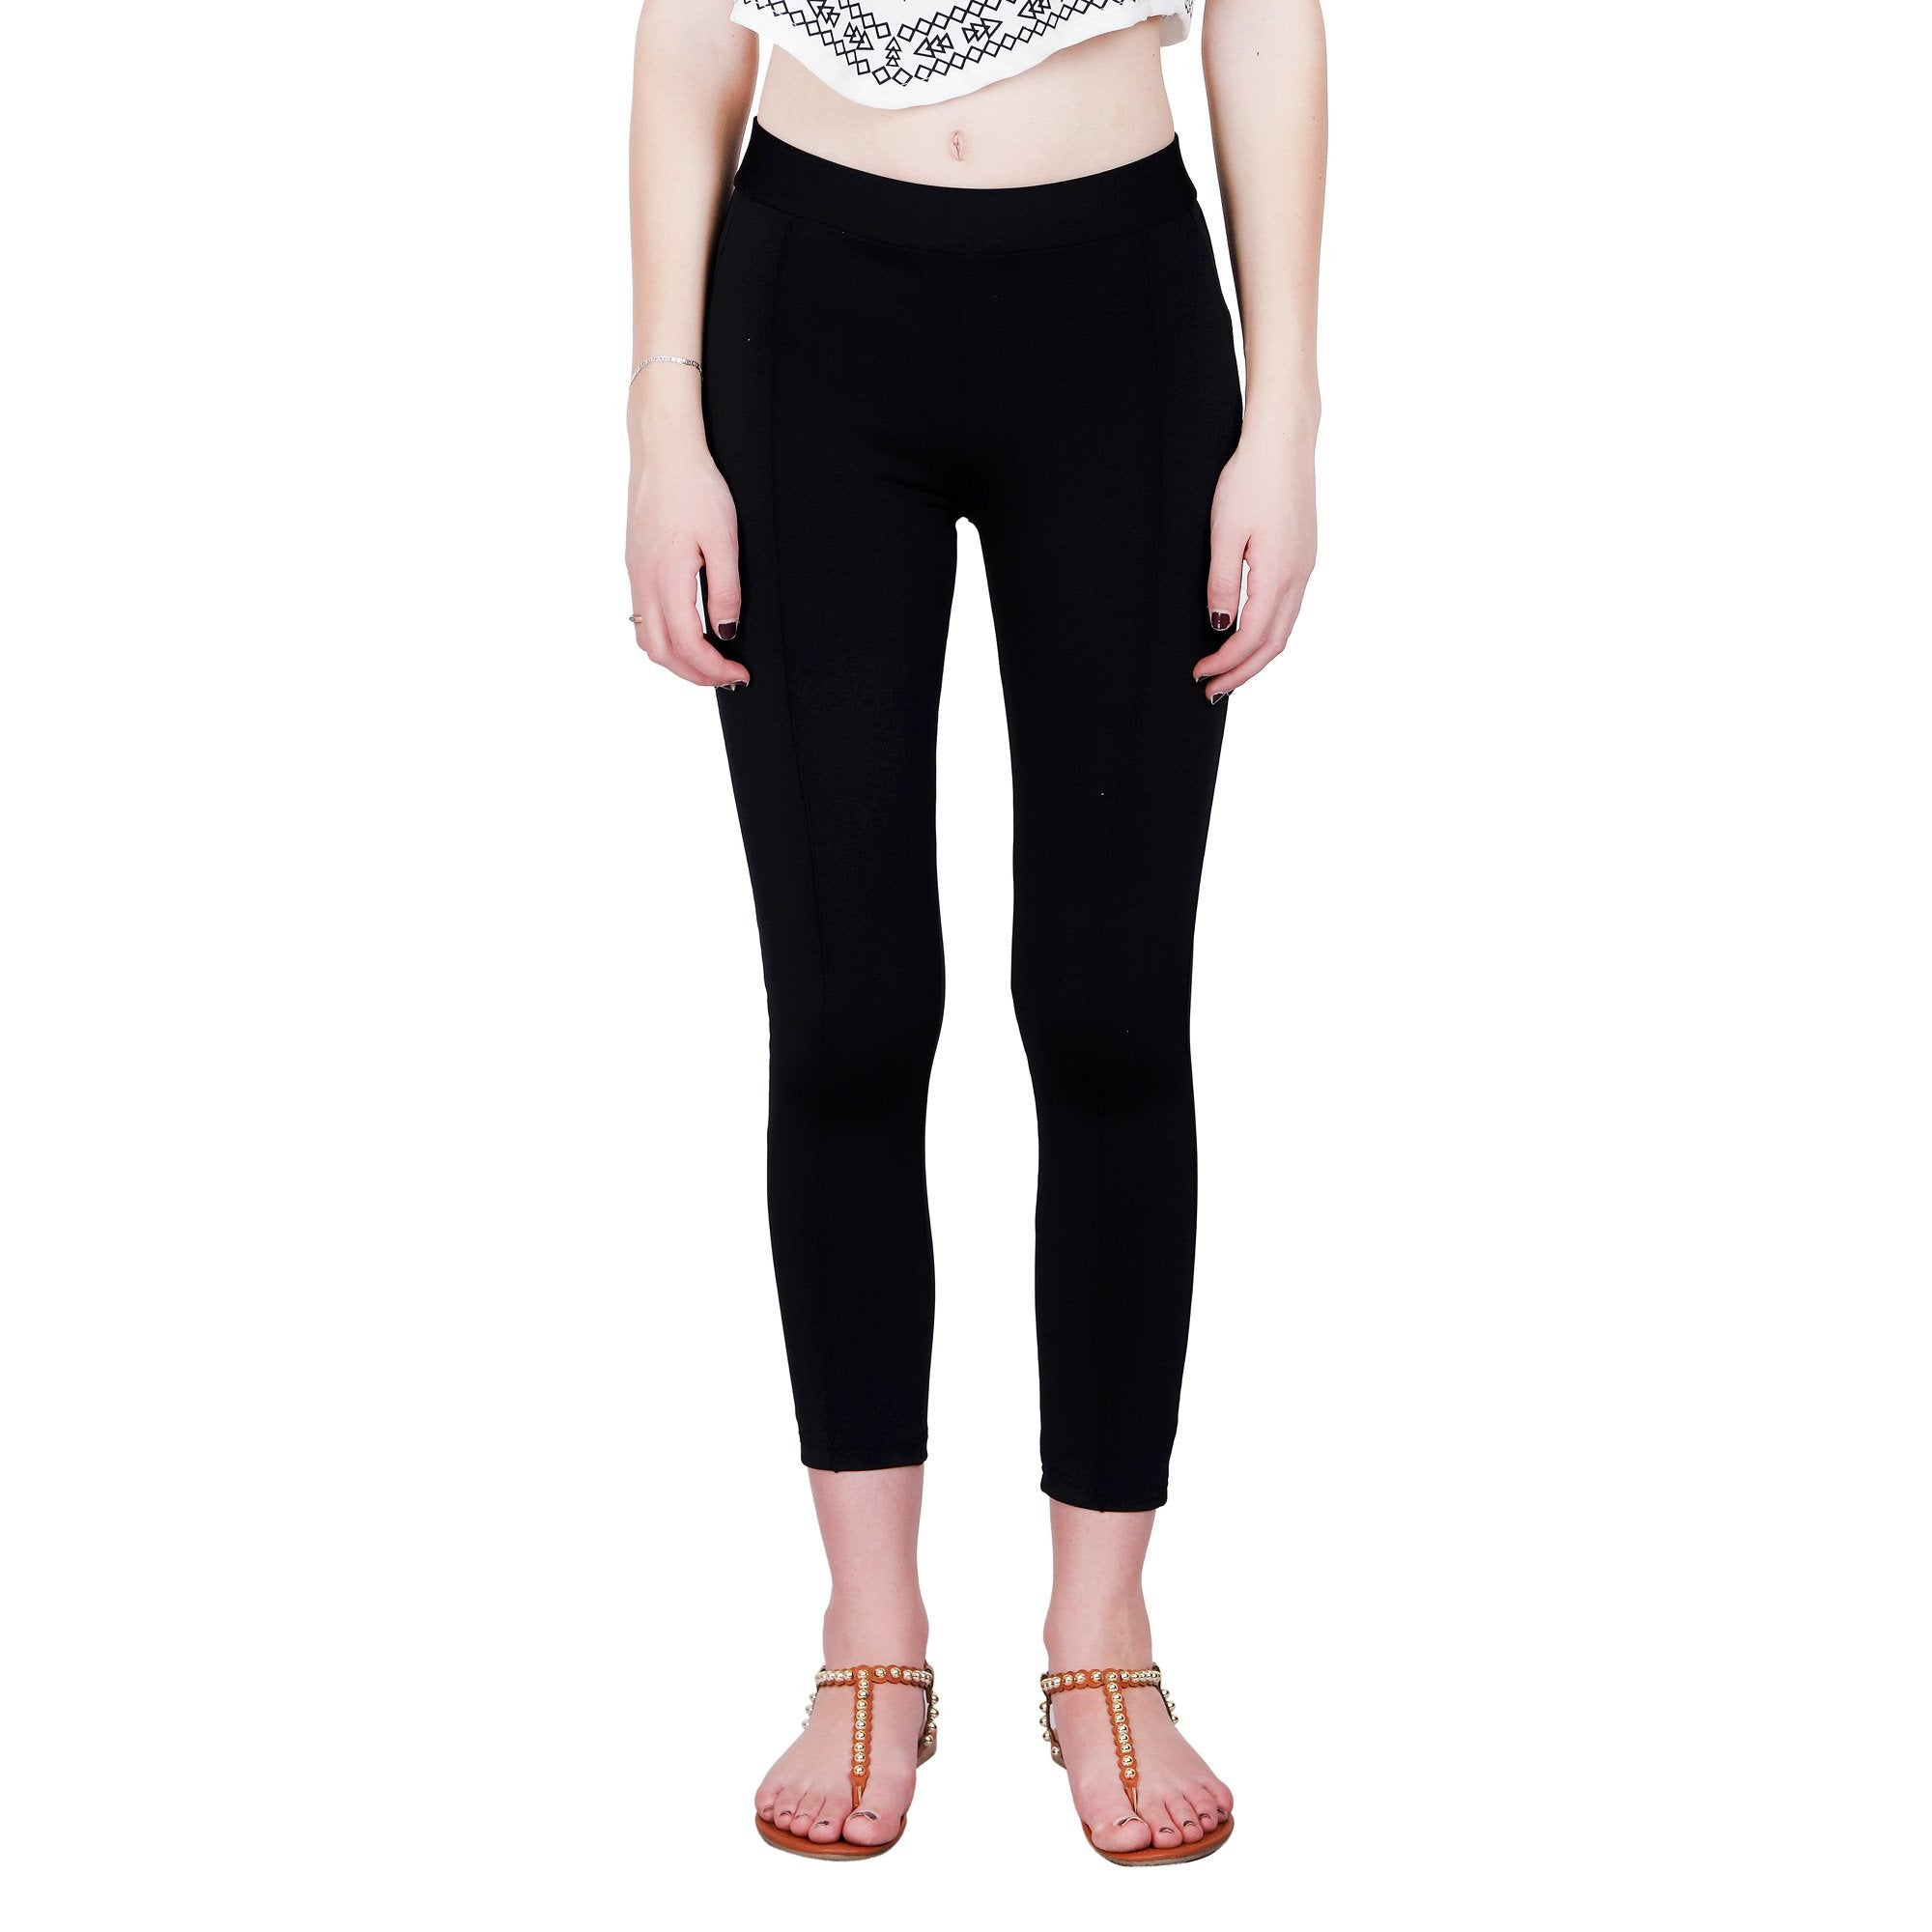 BLACK SOLID JEGGINGS - ZOMO